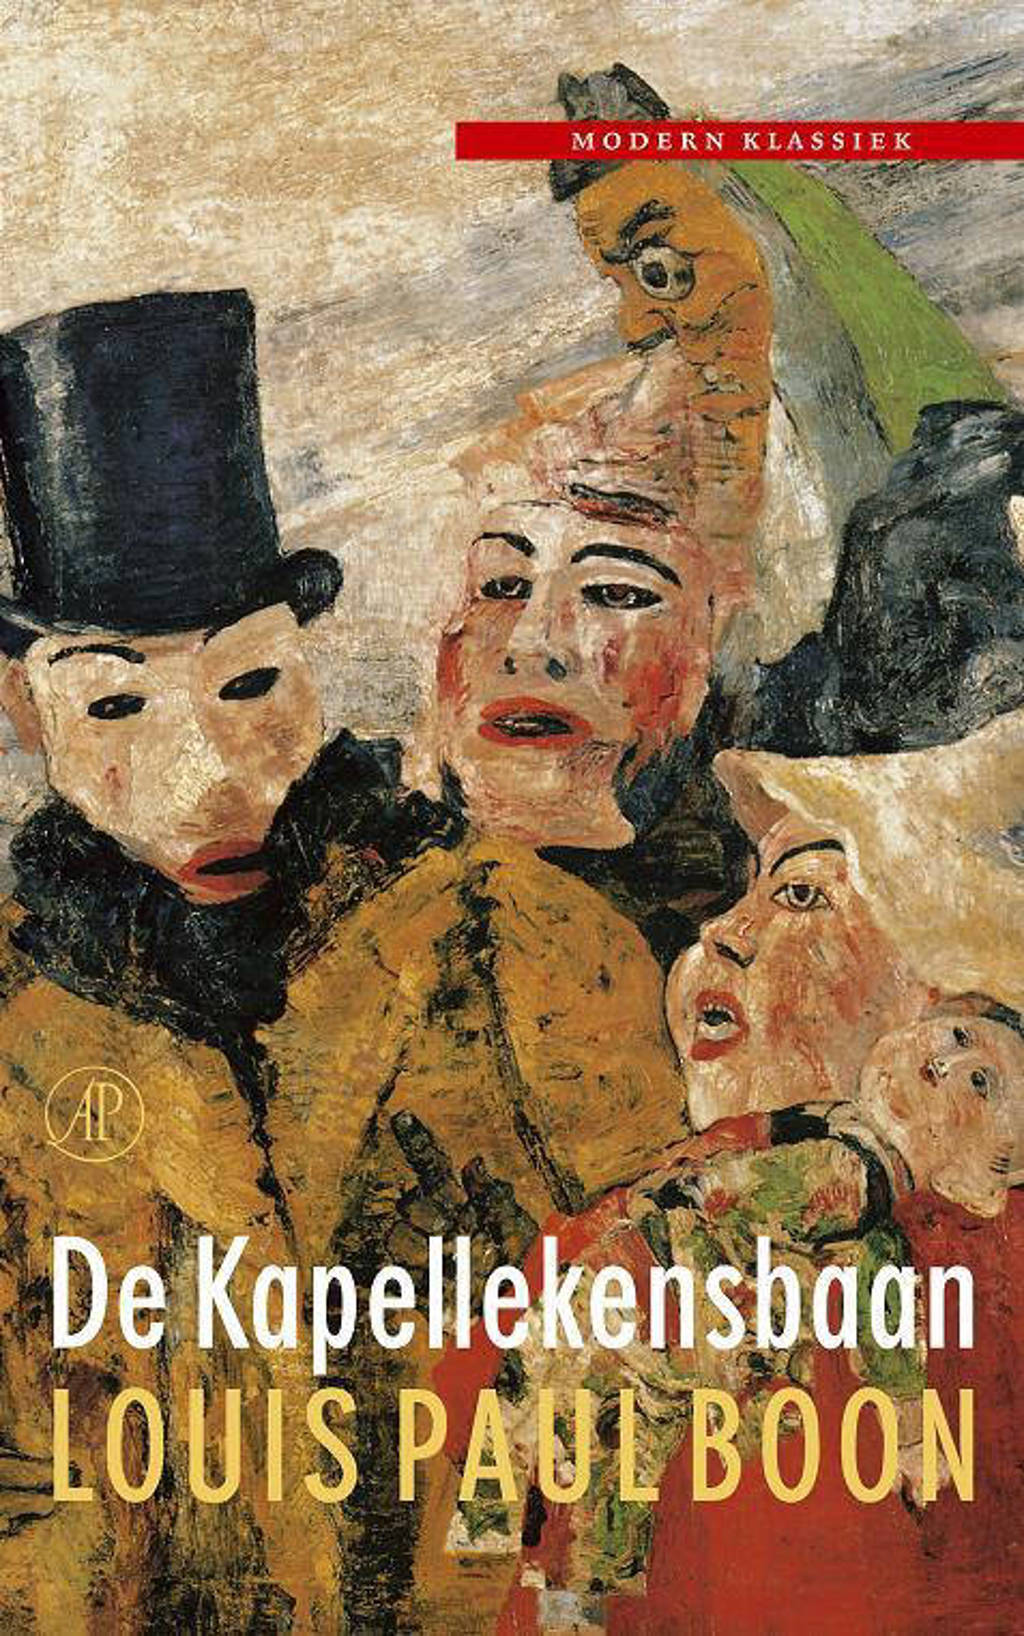 Boon-werkuitgave: De Kapellekensbaan - Louis Paul Boon